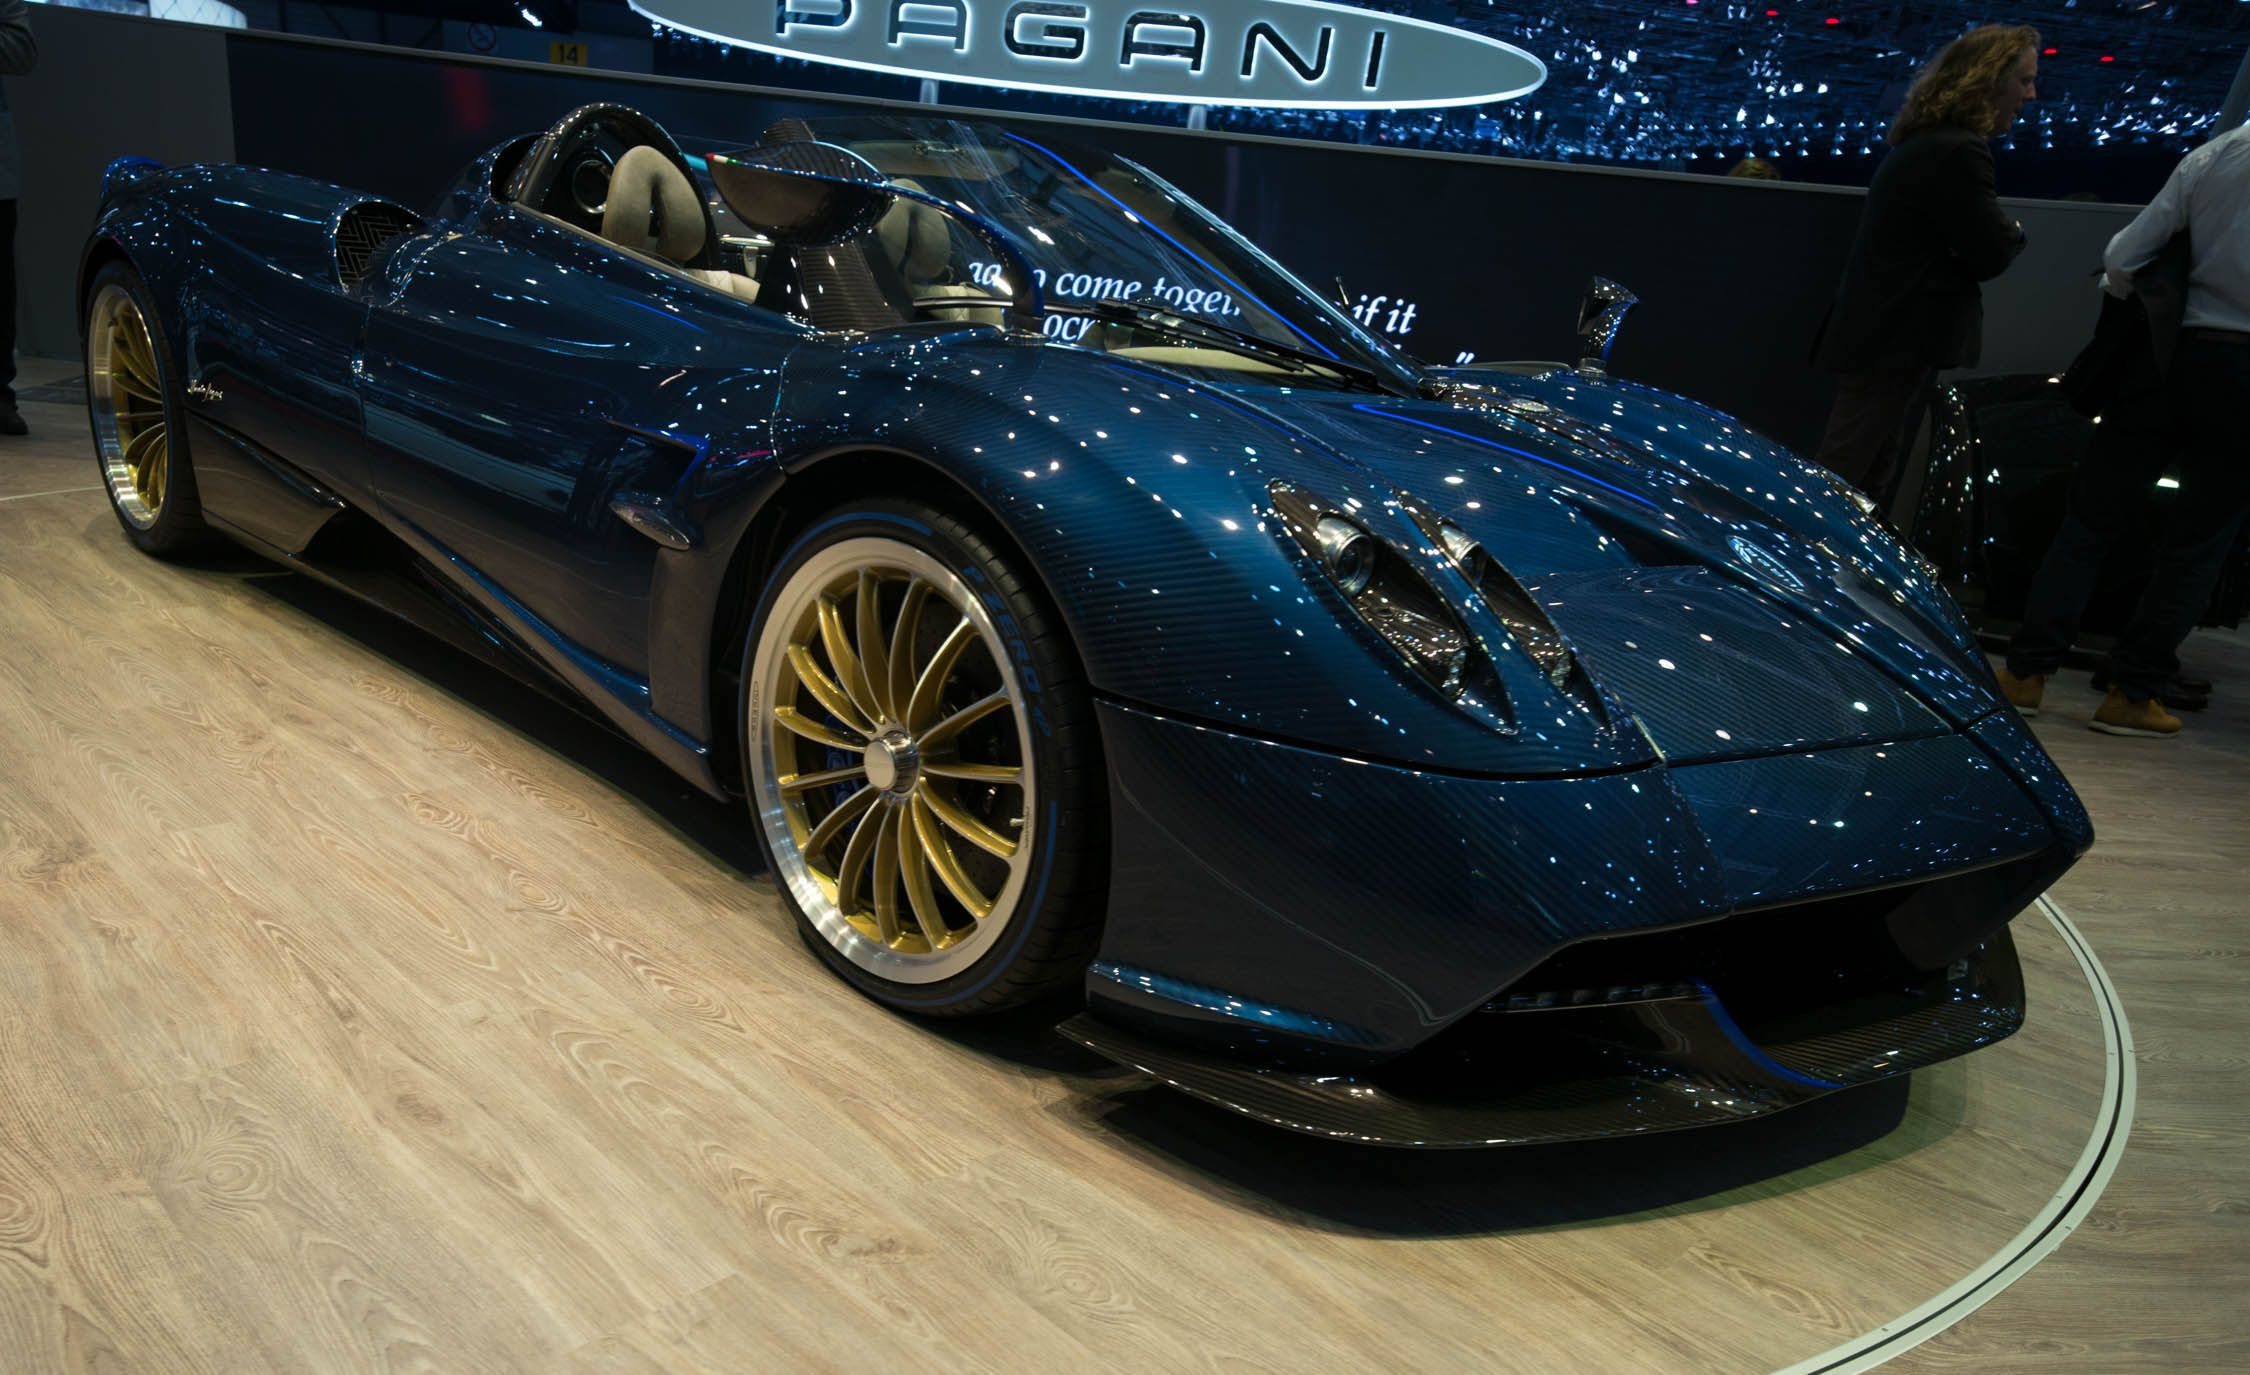 2018 pagani huayra reviews | pagani huayra price, photos, and specs